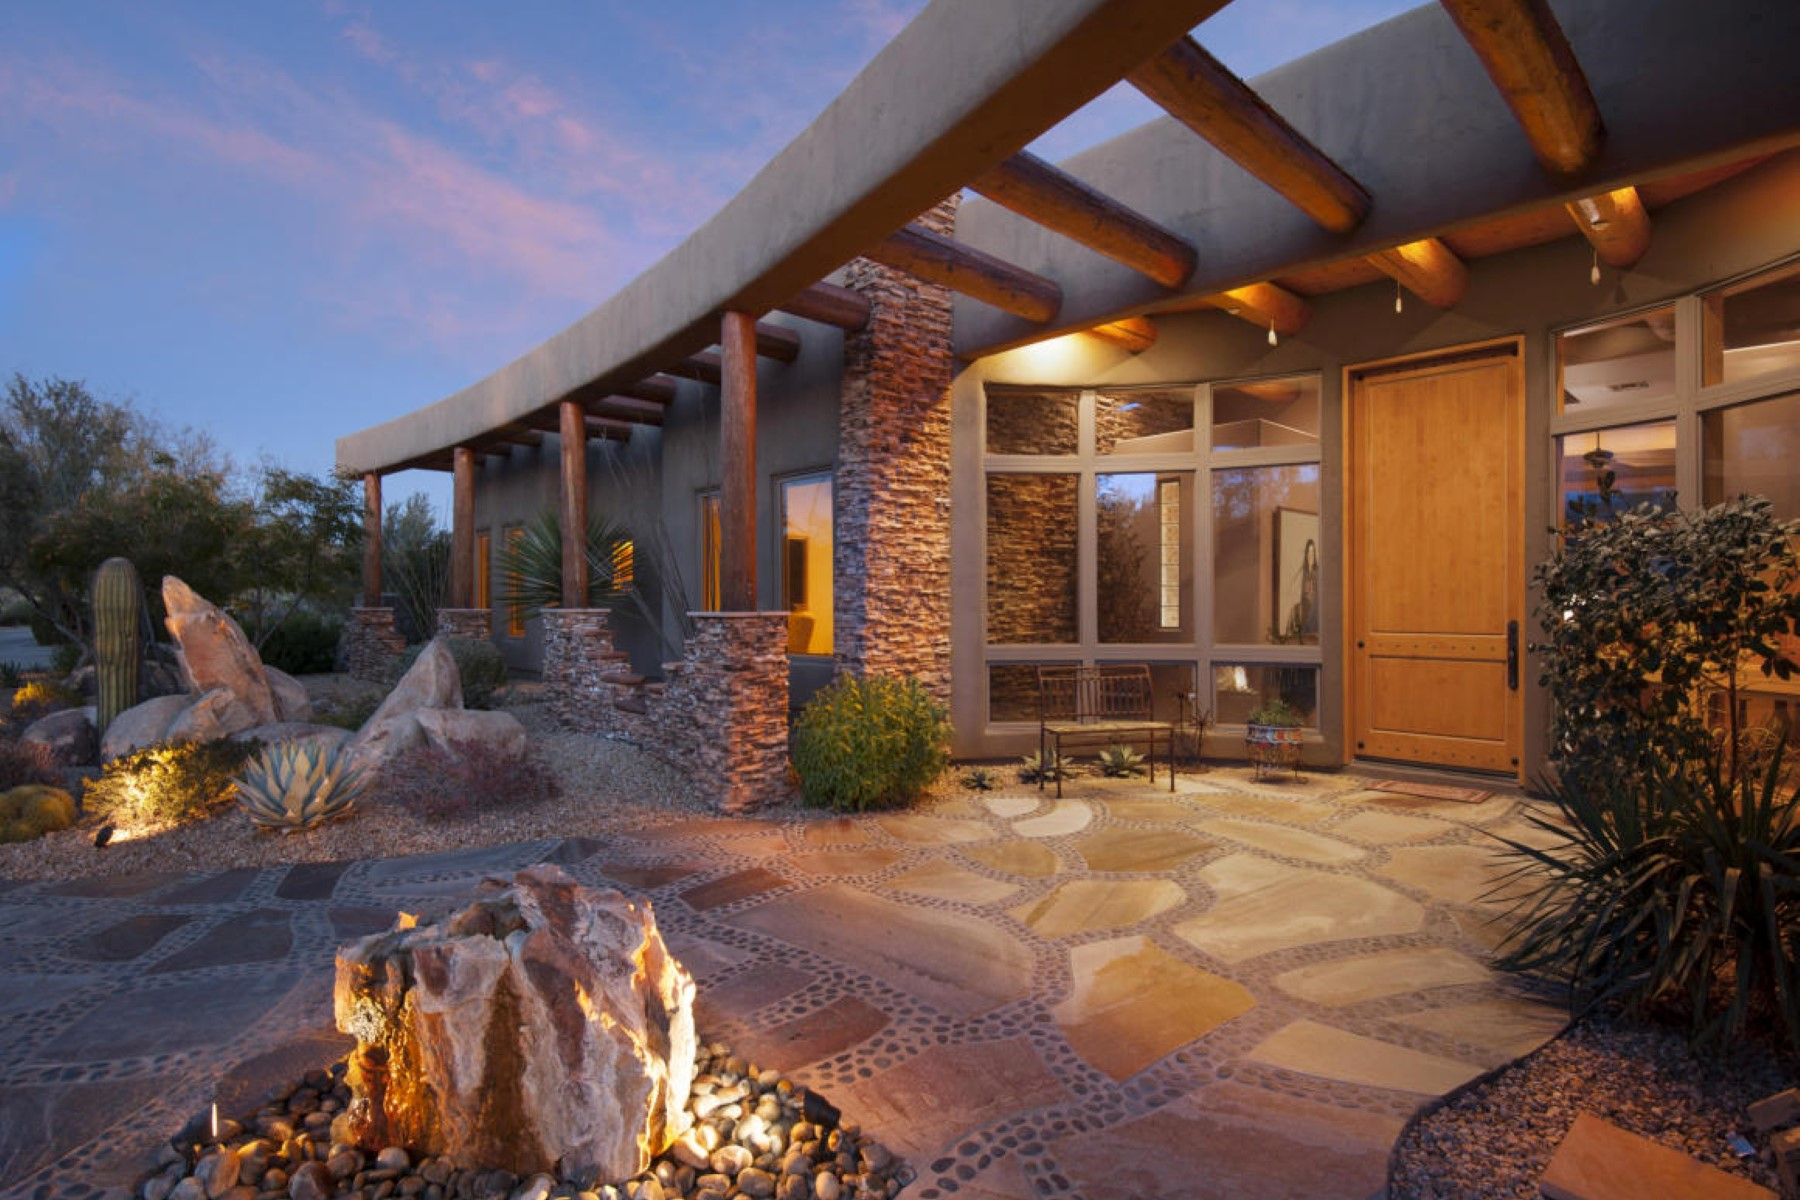 Maison unifamiliale pour l Vente à Southwest luxury living on 1.9 ac in Stone Canyon 1083 W Vistoso Highlands Drive Oro Valley, Arizona, 85755 États-Unis